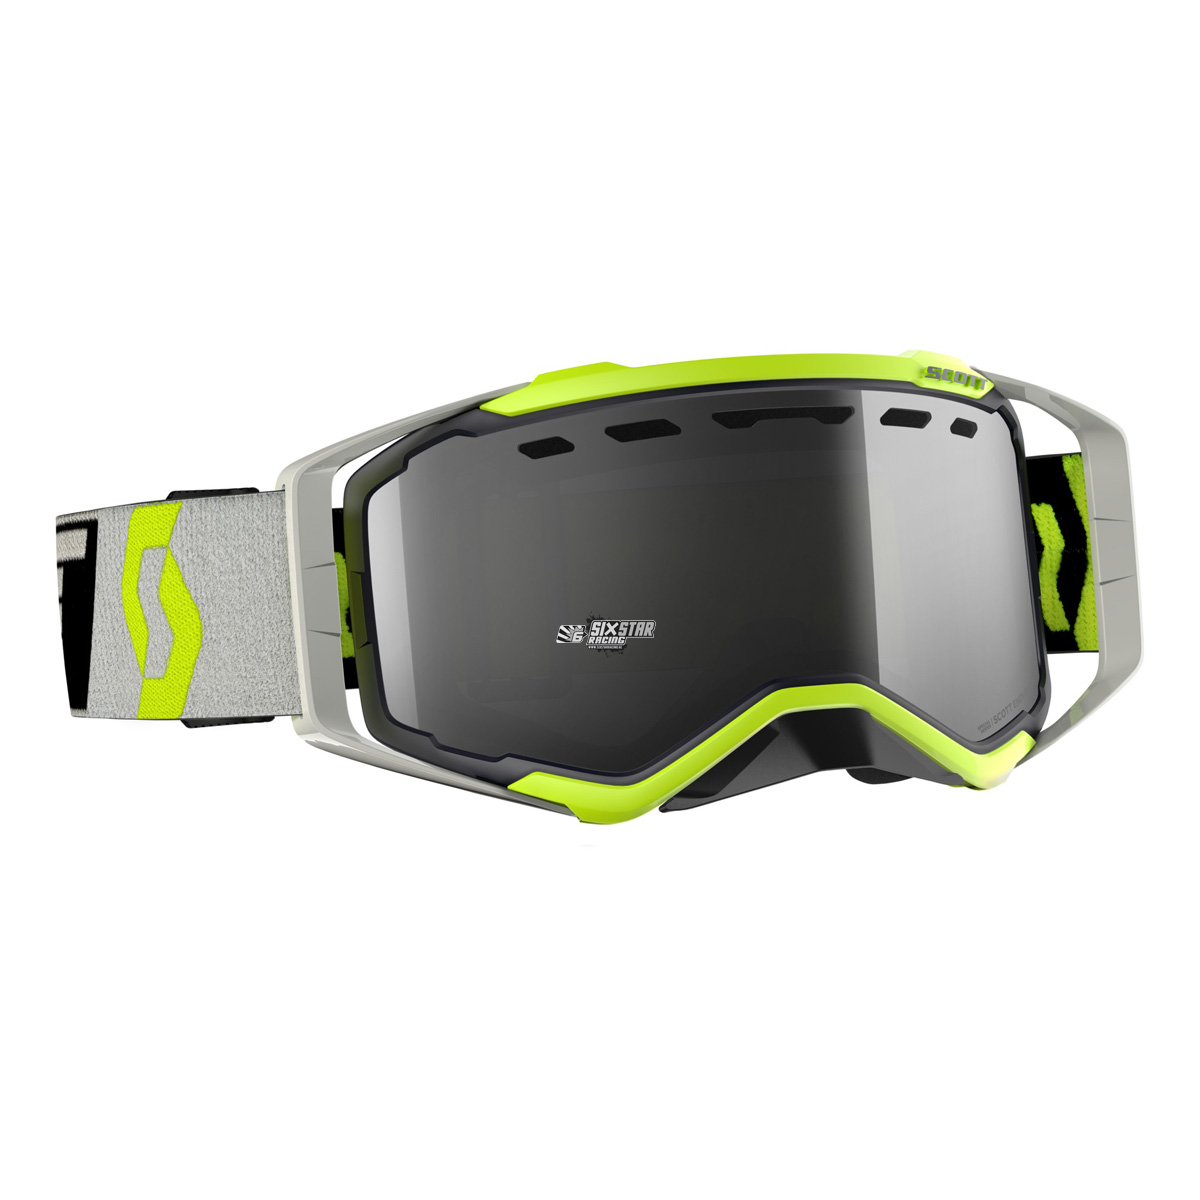 268179-1001328 Scott 2019 Prospect Enduro Light Sensitive Goggle Black Grrey brille crossbril lunette